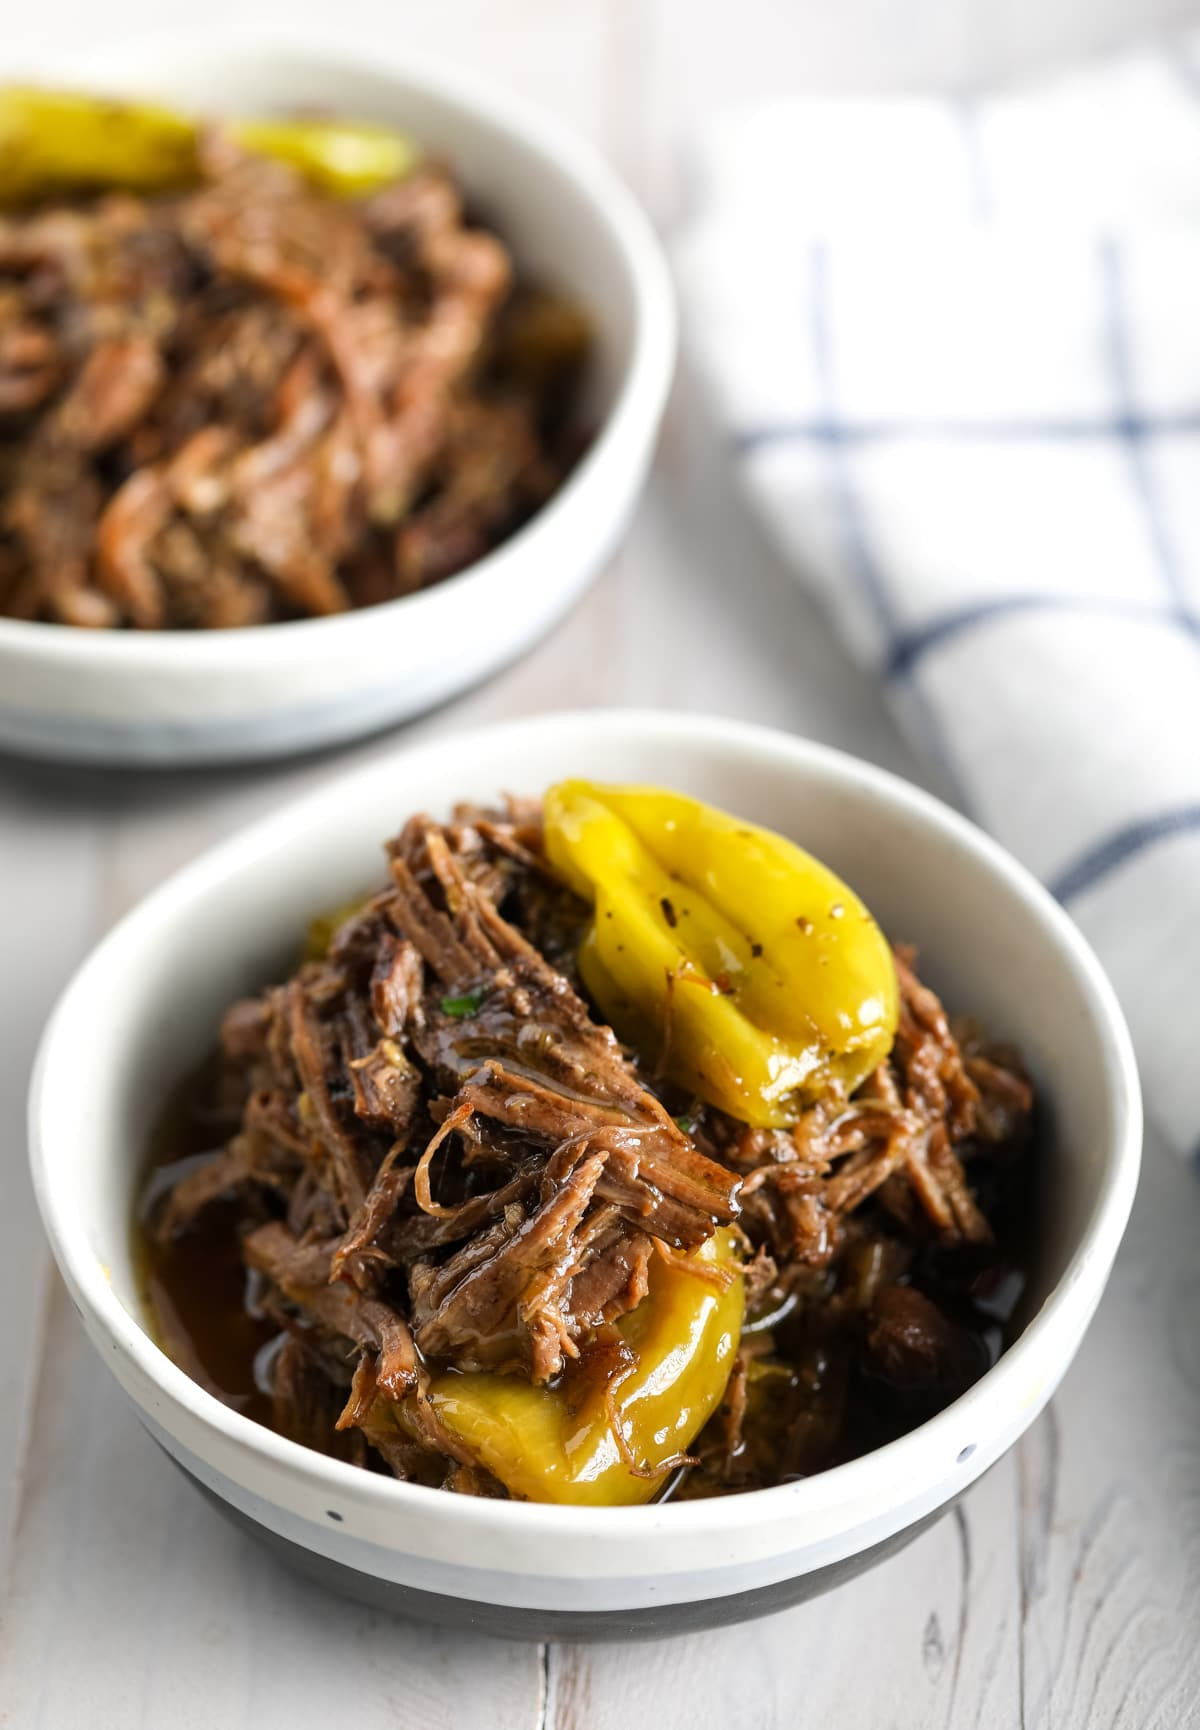 Best Instant Pot Italian Beef Recipe #ASpicyPerspective #pressurecooker #keto #lowcarb #paleo